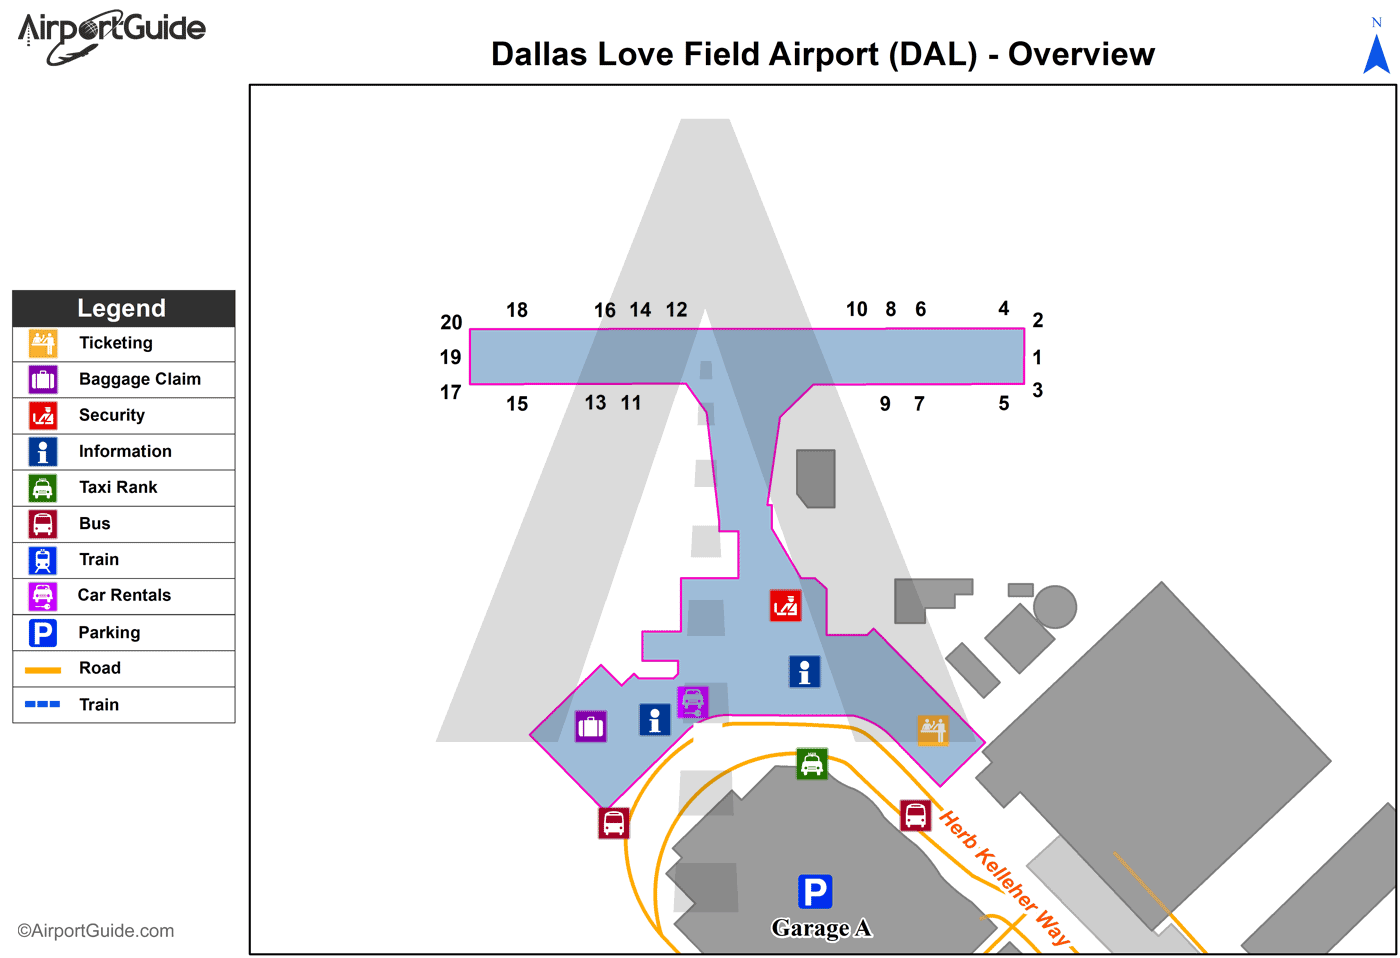 Dallas - Dallas Love Field (DAL) Airport Terminal Map - Overview